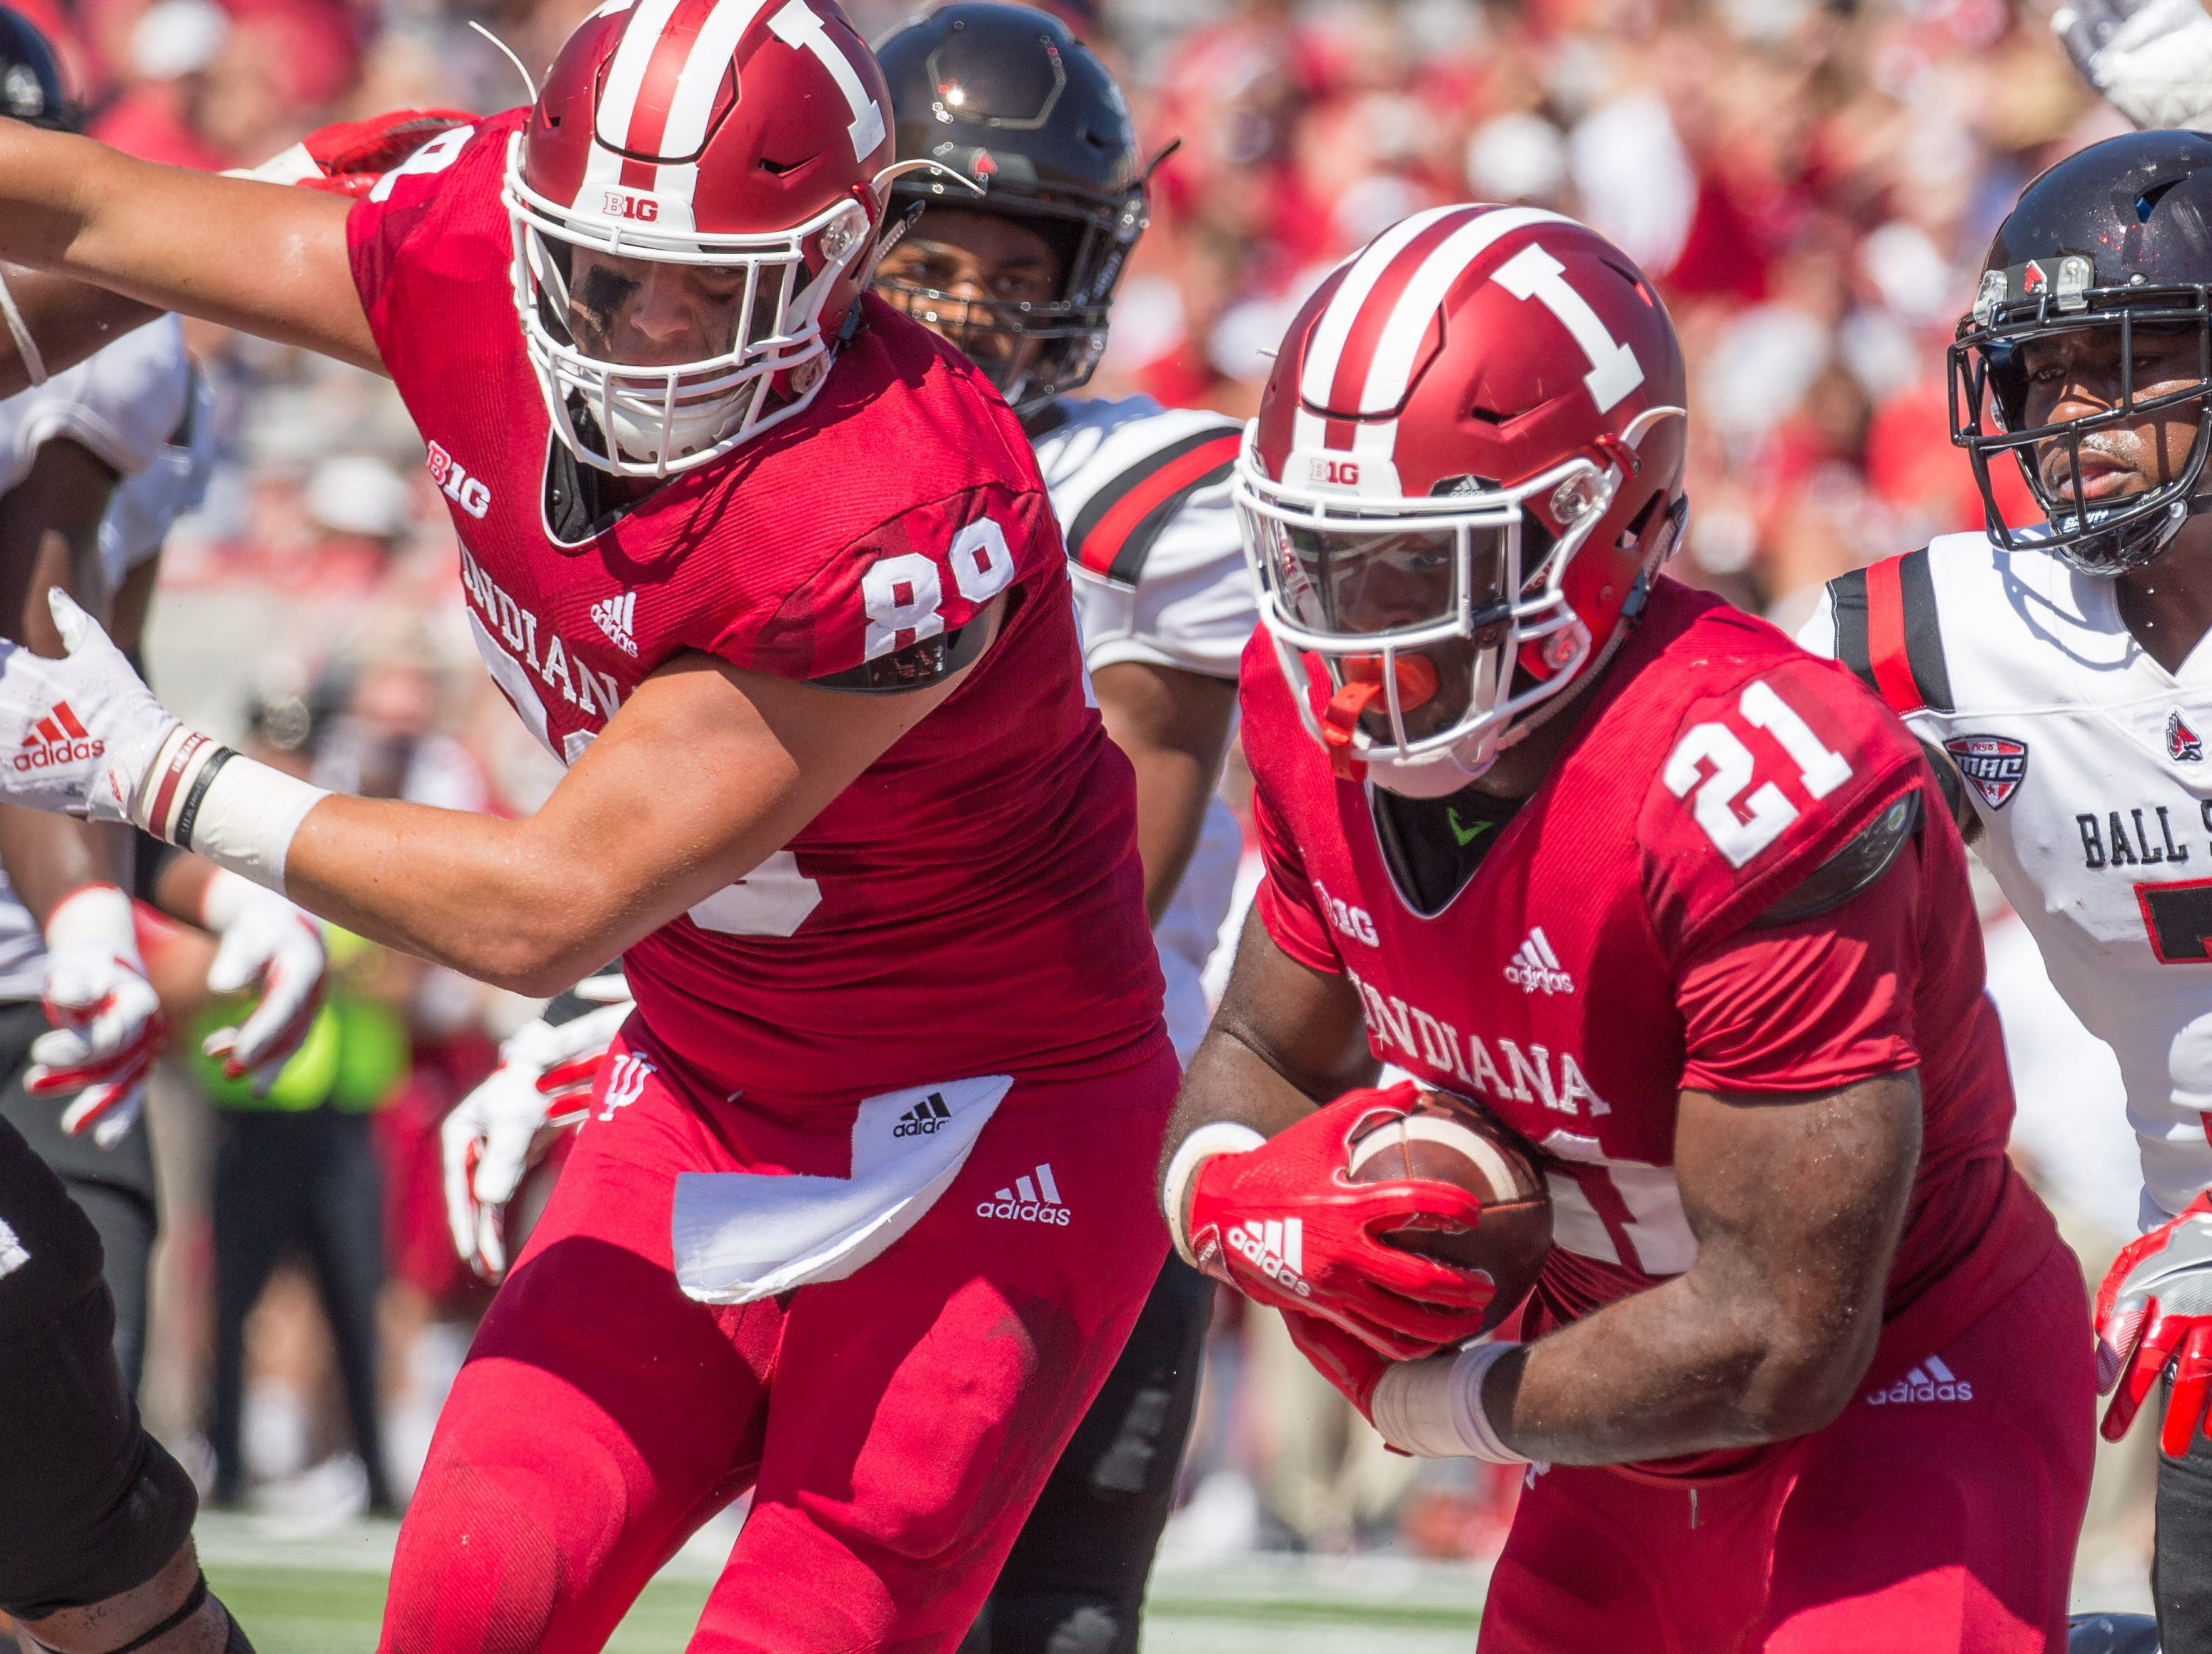 Sep 15, 2018; Bloomington, IN, USA; Indiana Hoosiers running back Stevie Scott (21) runs for a touchdown while Ball State Cardinals safety Bryce Cosby (5) and cornerback Marc Walton (7) defend in the second quarter at Memorial Stadium .